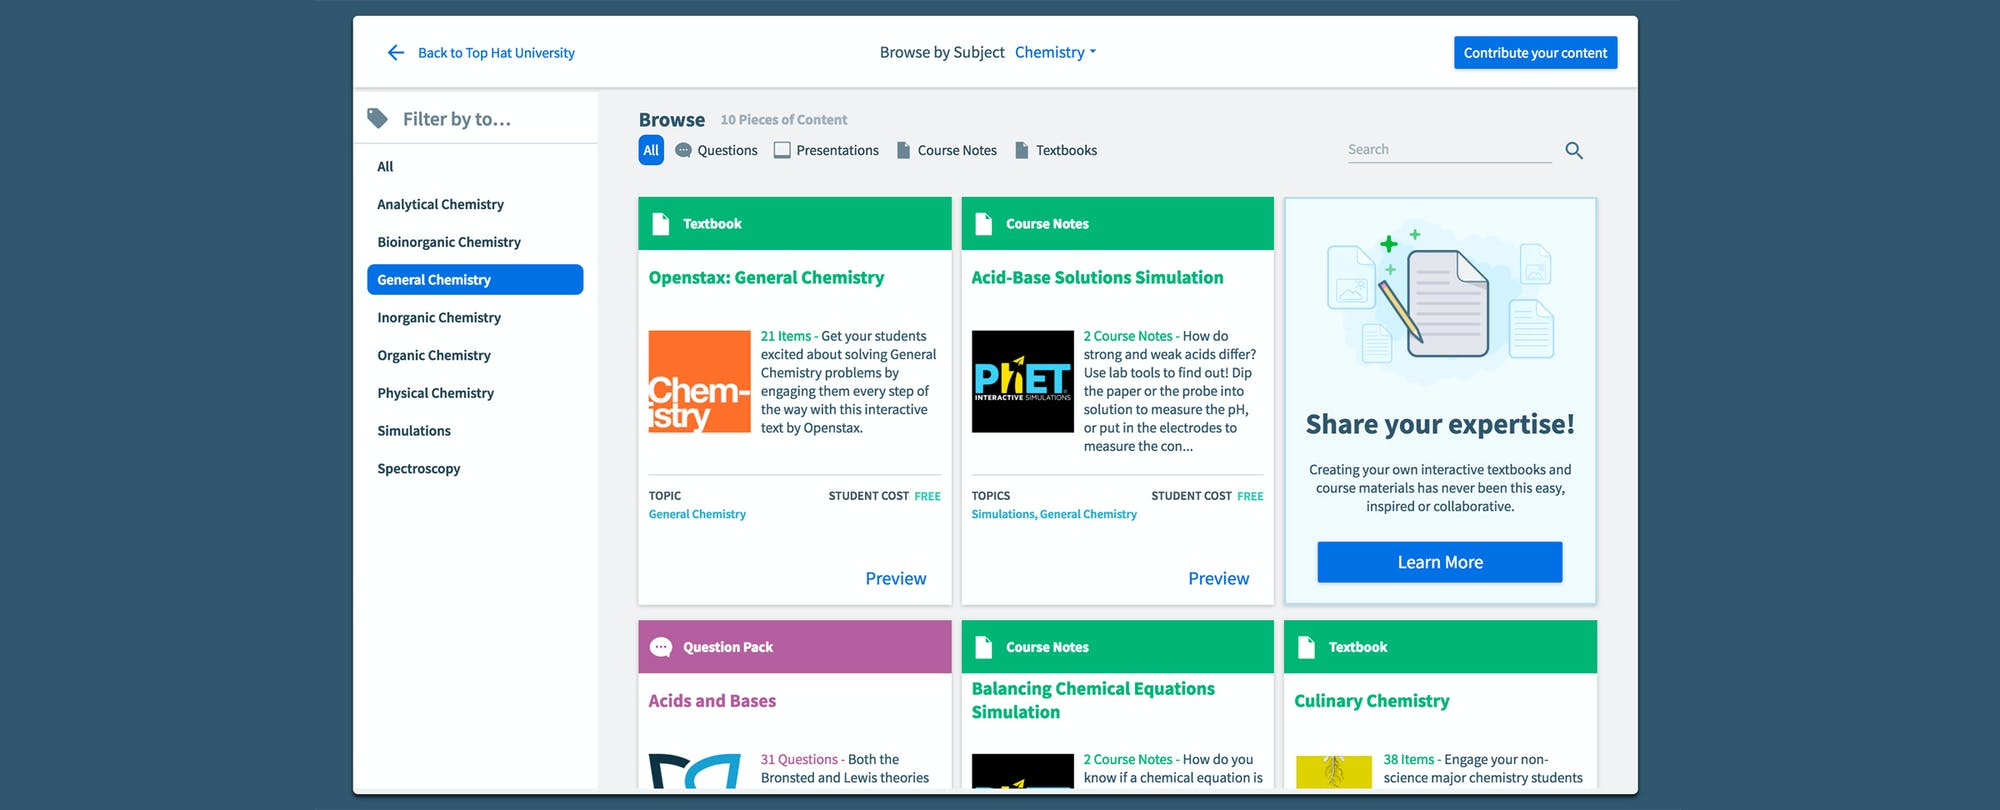 With $7.5M Funding Boost, Top Hat Launches Marketplace to Challenge Textbook Publishers